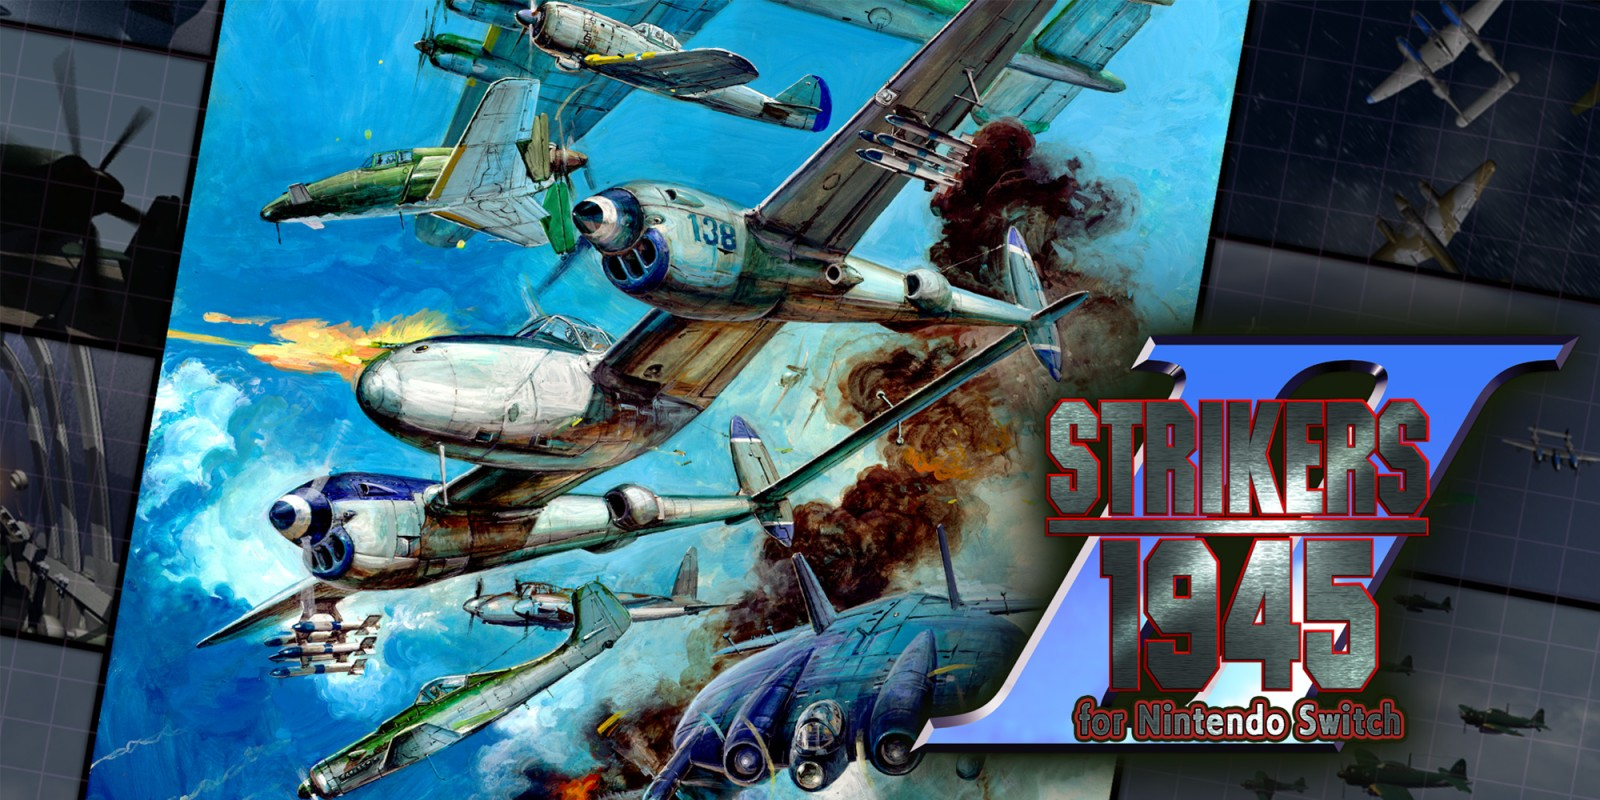 H2x1_NSwitchDS_Strikers19452ForNintendoSwitch_image1600w